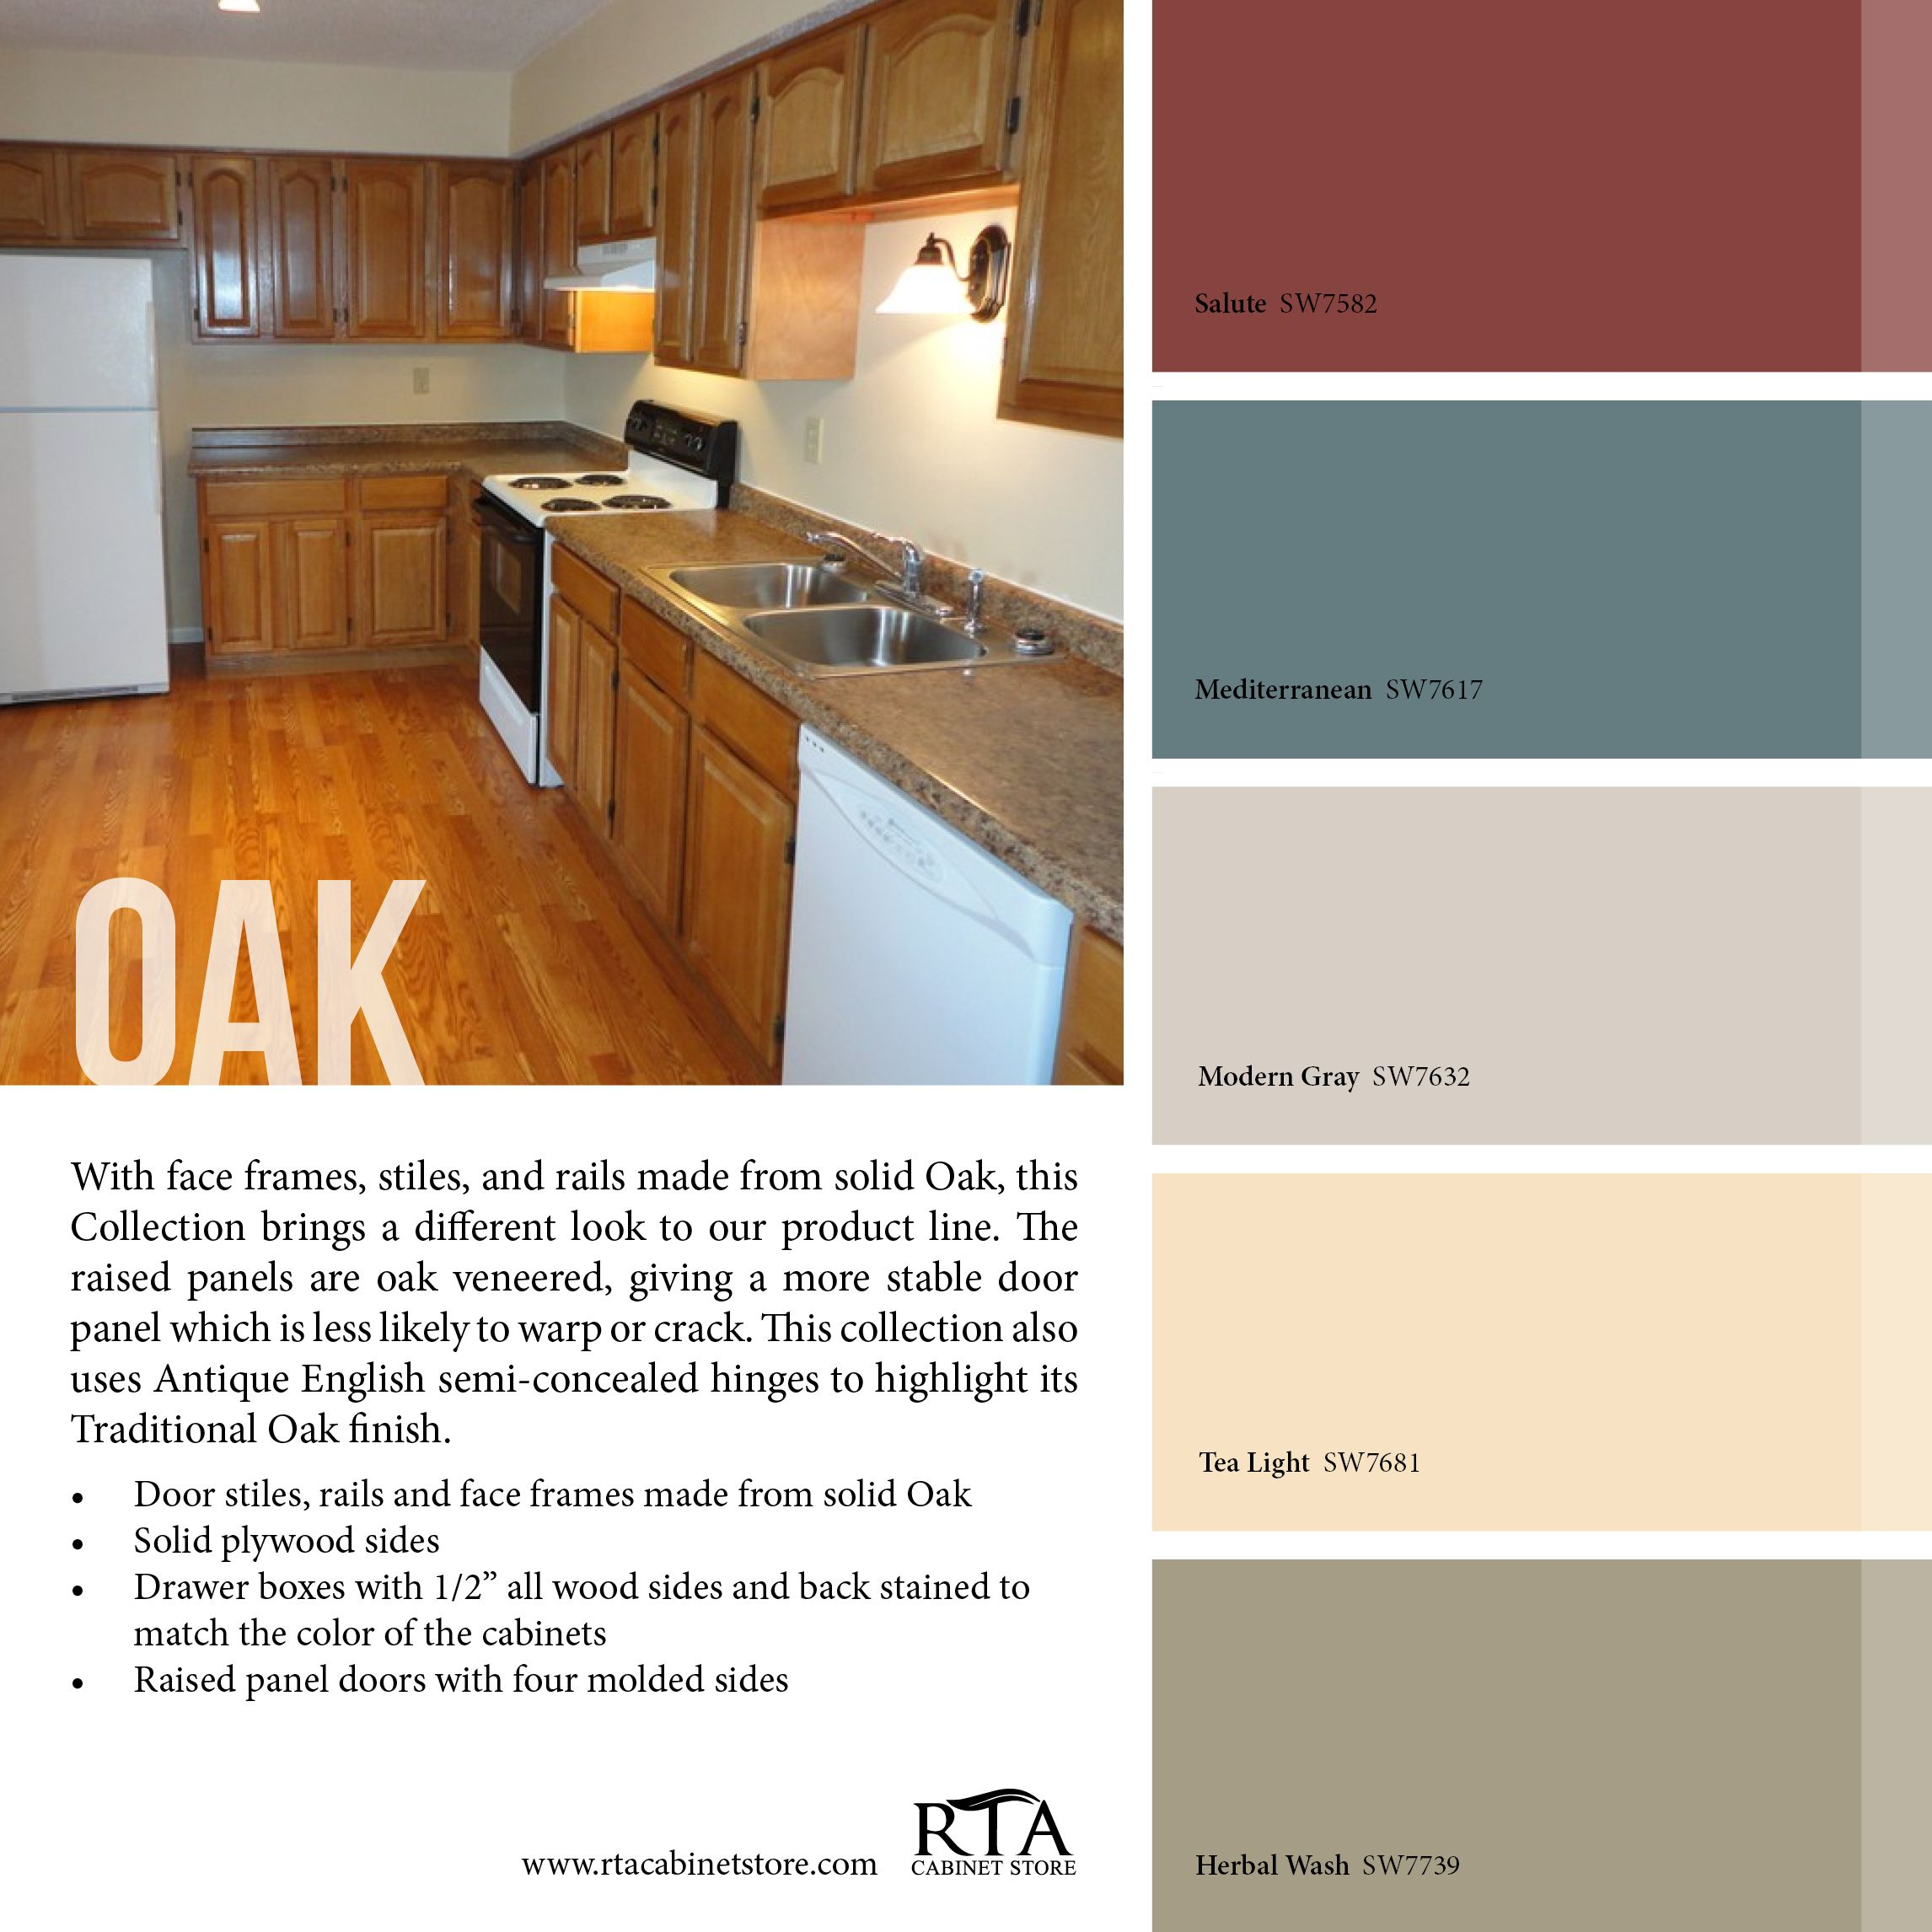 Light Oak Kitchen Cabinets: Color Palette To Go With Our Oak Kitchen Cabinet Line